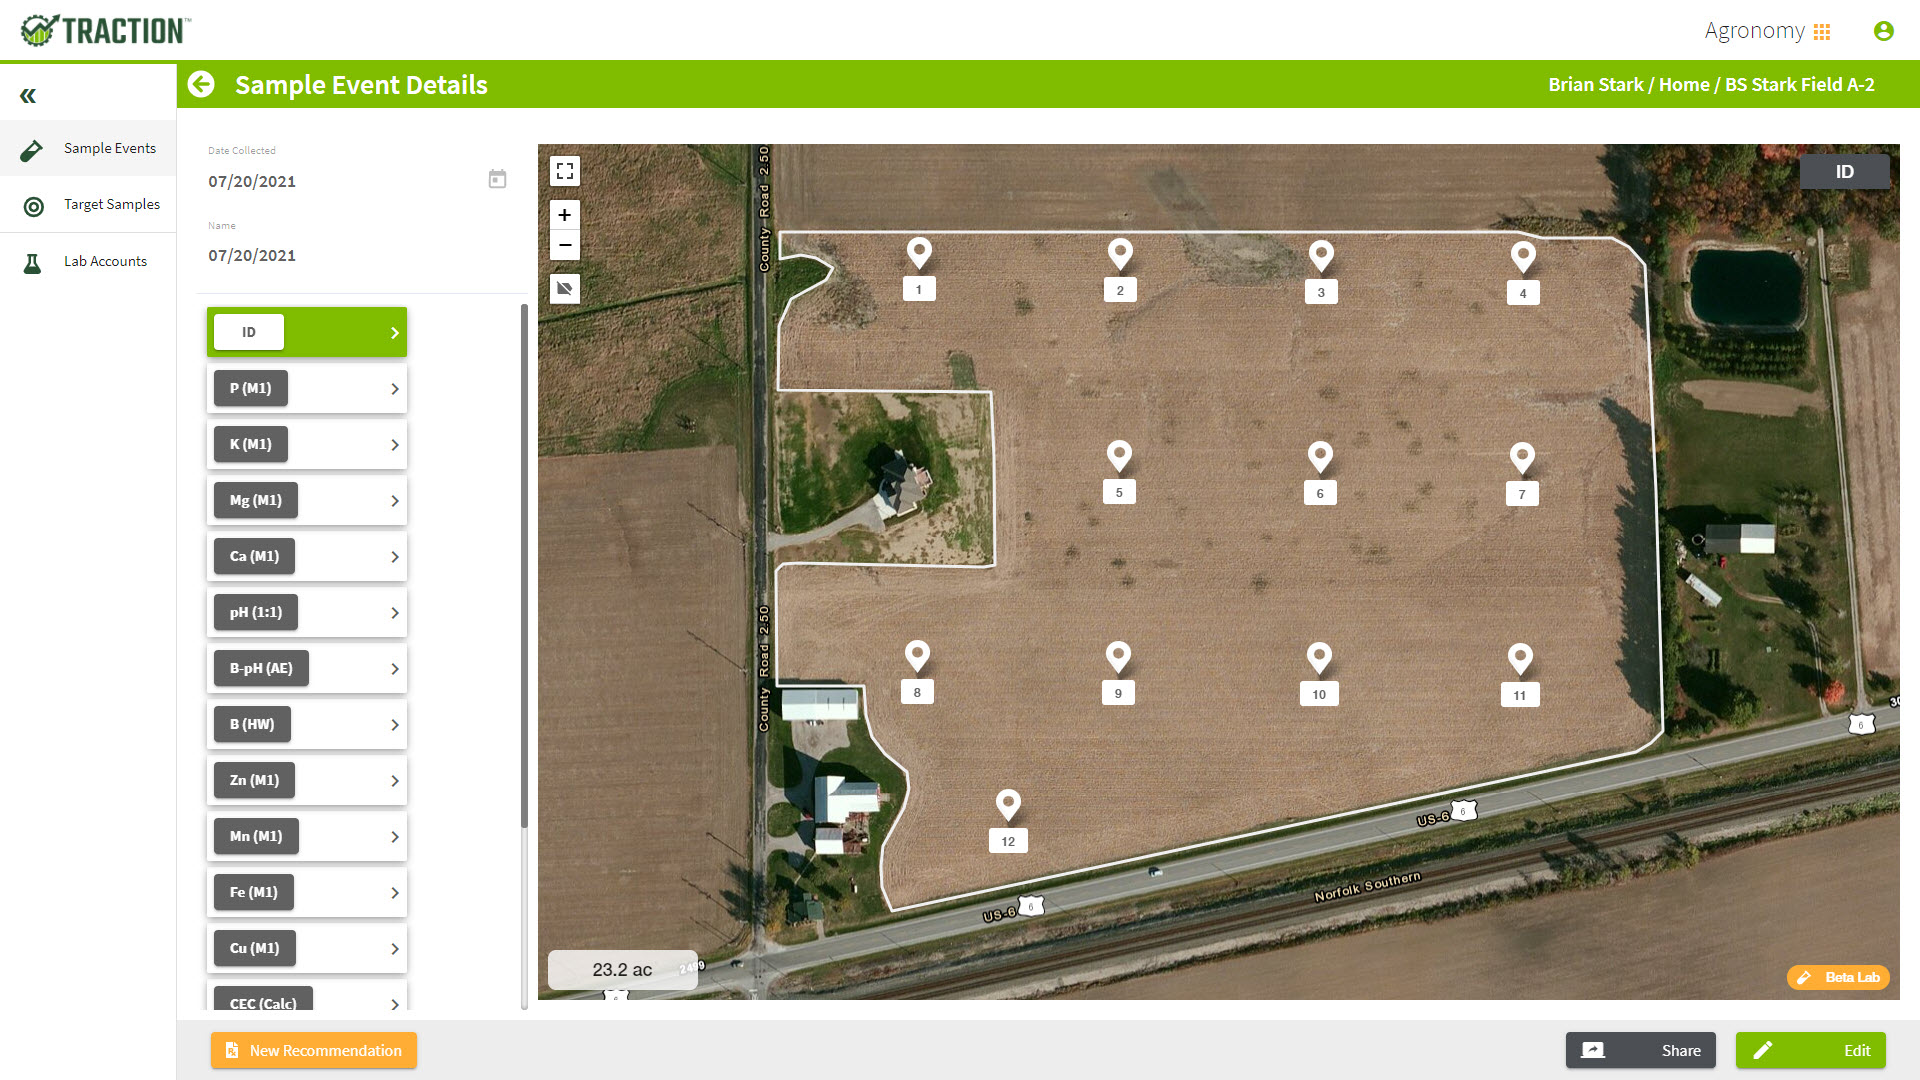 Traction agronomy software lays out target points for soil sampling.